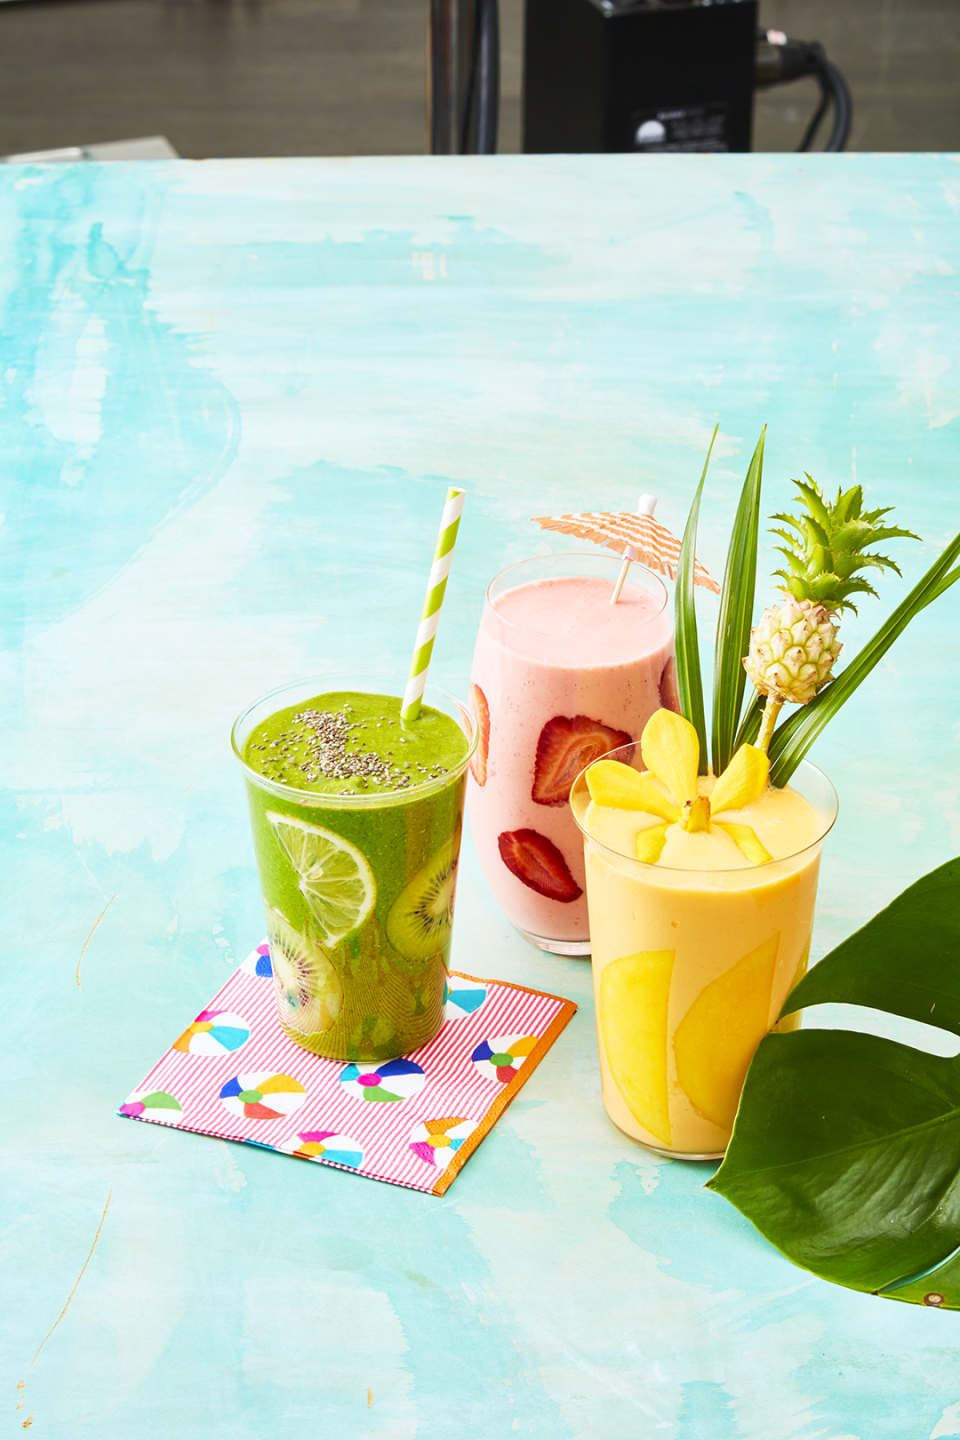 """<p>Sip your way to a healthier breakfast by blending your produce each morning. These<a href=""""https://www.goodhousekeeping.com/food-recipes/g5067/how-to-make-a-smoothie/"""" rel=""""nofollow noopener"""" target=""""_blank"""" data-ylk=""""slk:smoothie recipes"""" class=""""link rapid-noclick-resp""""> smoothie recipes</a> will get your day started off right by packing in nutrient-rich fruit and vegetables, plus protein-filled yogurt and milk for an energy boost that will keep you going until lunch. And unlike what you might get from <a href=""""https://www.goodhousekeeping.com/health/diet-nutrition/a22850252/is-jamba-juice-healthy/"""" rel=""""nofollow noopener"""" target=""""_blank"""" data-ylk=""""slk:store-bought options"""" class=""""link rapid-noclick-resp"""">store-bought options</a>, they prioritize actual produce instead of the juices, sorbets and sweeteners that can add tons of sugar to your cup. </p><p>Our <a href=""""https://www.goodhousekeeping.com/institute/about-the-institute/a19748212/good-housekeeping-institute-product-reviews/"""" rel=""""nofollow noopener"""" target=""""_blank"""" data-ylk=""""slk:Good Housekeeping Institute"""" class=""""link rapid-noclick-resp"""">Good Housekeeping Institute</a> Kitchen Appliances Lab also tested the best blenders for whipping up the smoothest, creamiest drinks. The <a href=""""https://www.amazon.com/Vitamix-E310-Explorian-Professional-Grade-Container/dp/B0758JHZM3?tag=syn-yahoo-20&ascsubtag=%5Bartid%7C10055.g.4060%5Bsrc%7Cyahoo-us"""" rel=""""nofollow noopener"""" target=""""_blank"""" data-ylk=""""slk:Vitamix E310 Explorian"""" class=""""link rapid-noclick-resp"""">Vitamix E310 Explorian</a> nabbed our top spot, but check out <a href=""""https://www.amazon.com/dp/B00NHBD10K?tag=syn-yahoo-20&ascsubtag=%5Bartid%7C10055.g.4060%5Bsrc%7Cyahoo-us"""" rel=""""nofollow noopener"""" target=""""_blank"""" data-ylk=""""slk:Black + Decker XL Blast Drink Machine"""" class=""""link rapid-noclick-resp"""">Black + Decker XL Blast Drink Machine</a> as a budget buy or the <a href=""""https://www.amazon.com/NutriBullet-Balance-Bluetooth-Enabled-Blender/dp/B0773P3WN5?tag=syn-ya"""